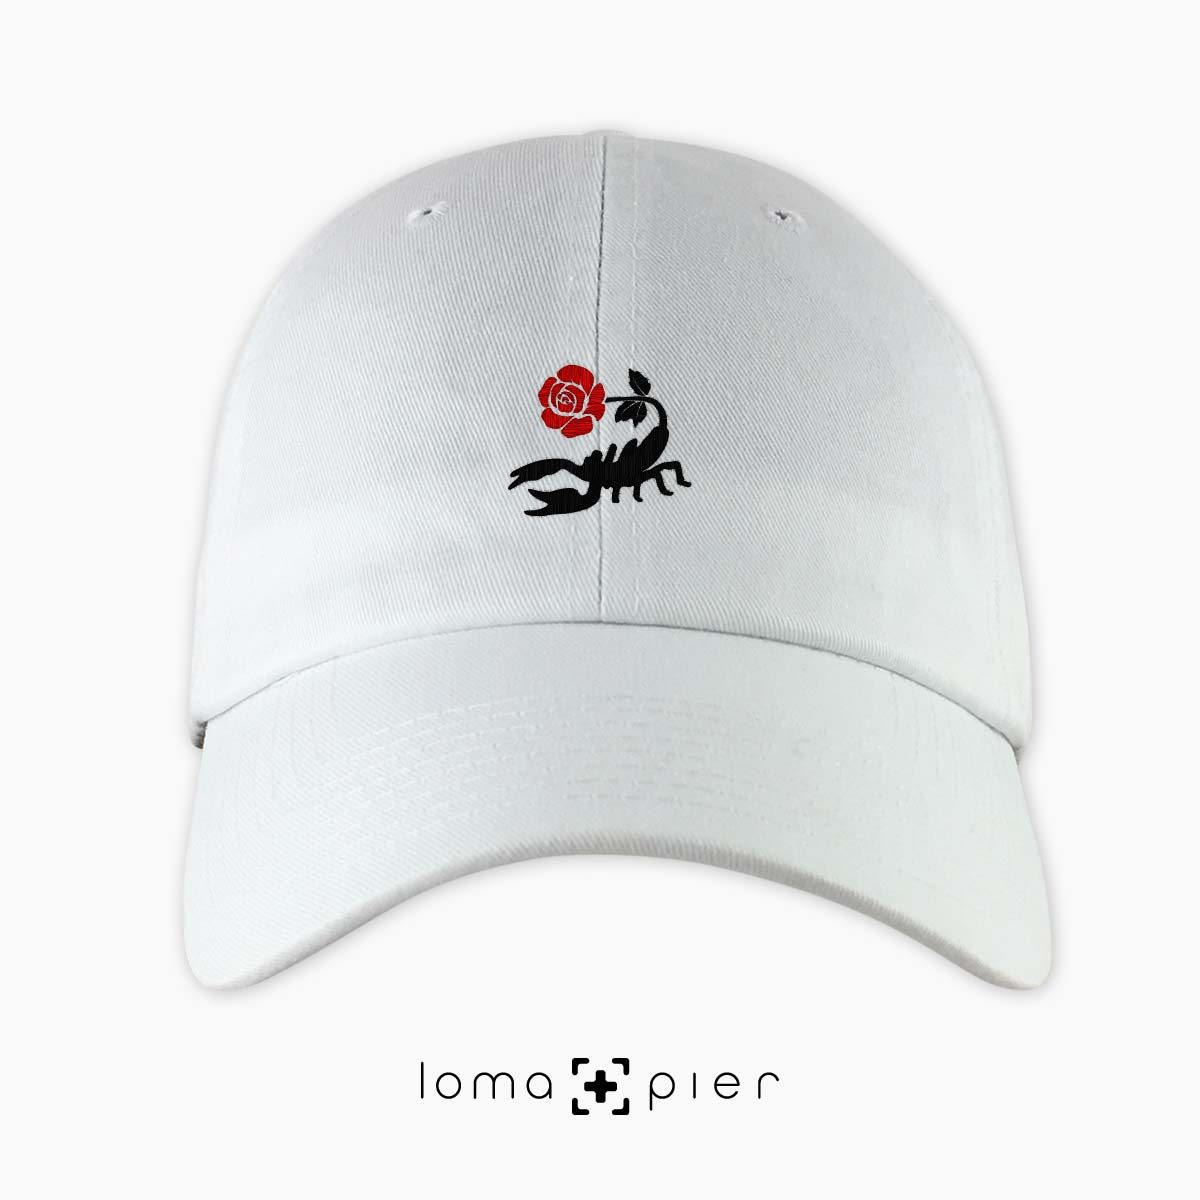 SCORPION ROSE icon embroidered on a white unstructured dad hat with red and black thread by loma+pier hat store made in the USA